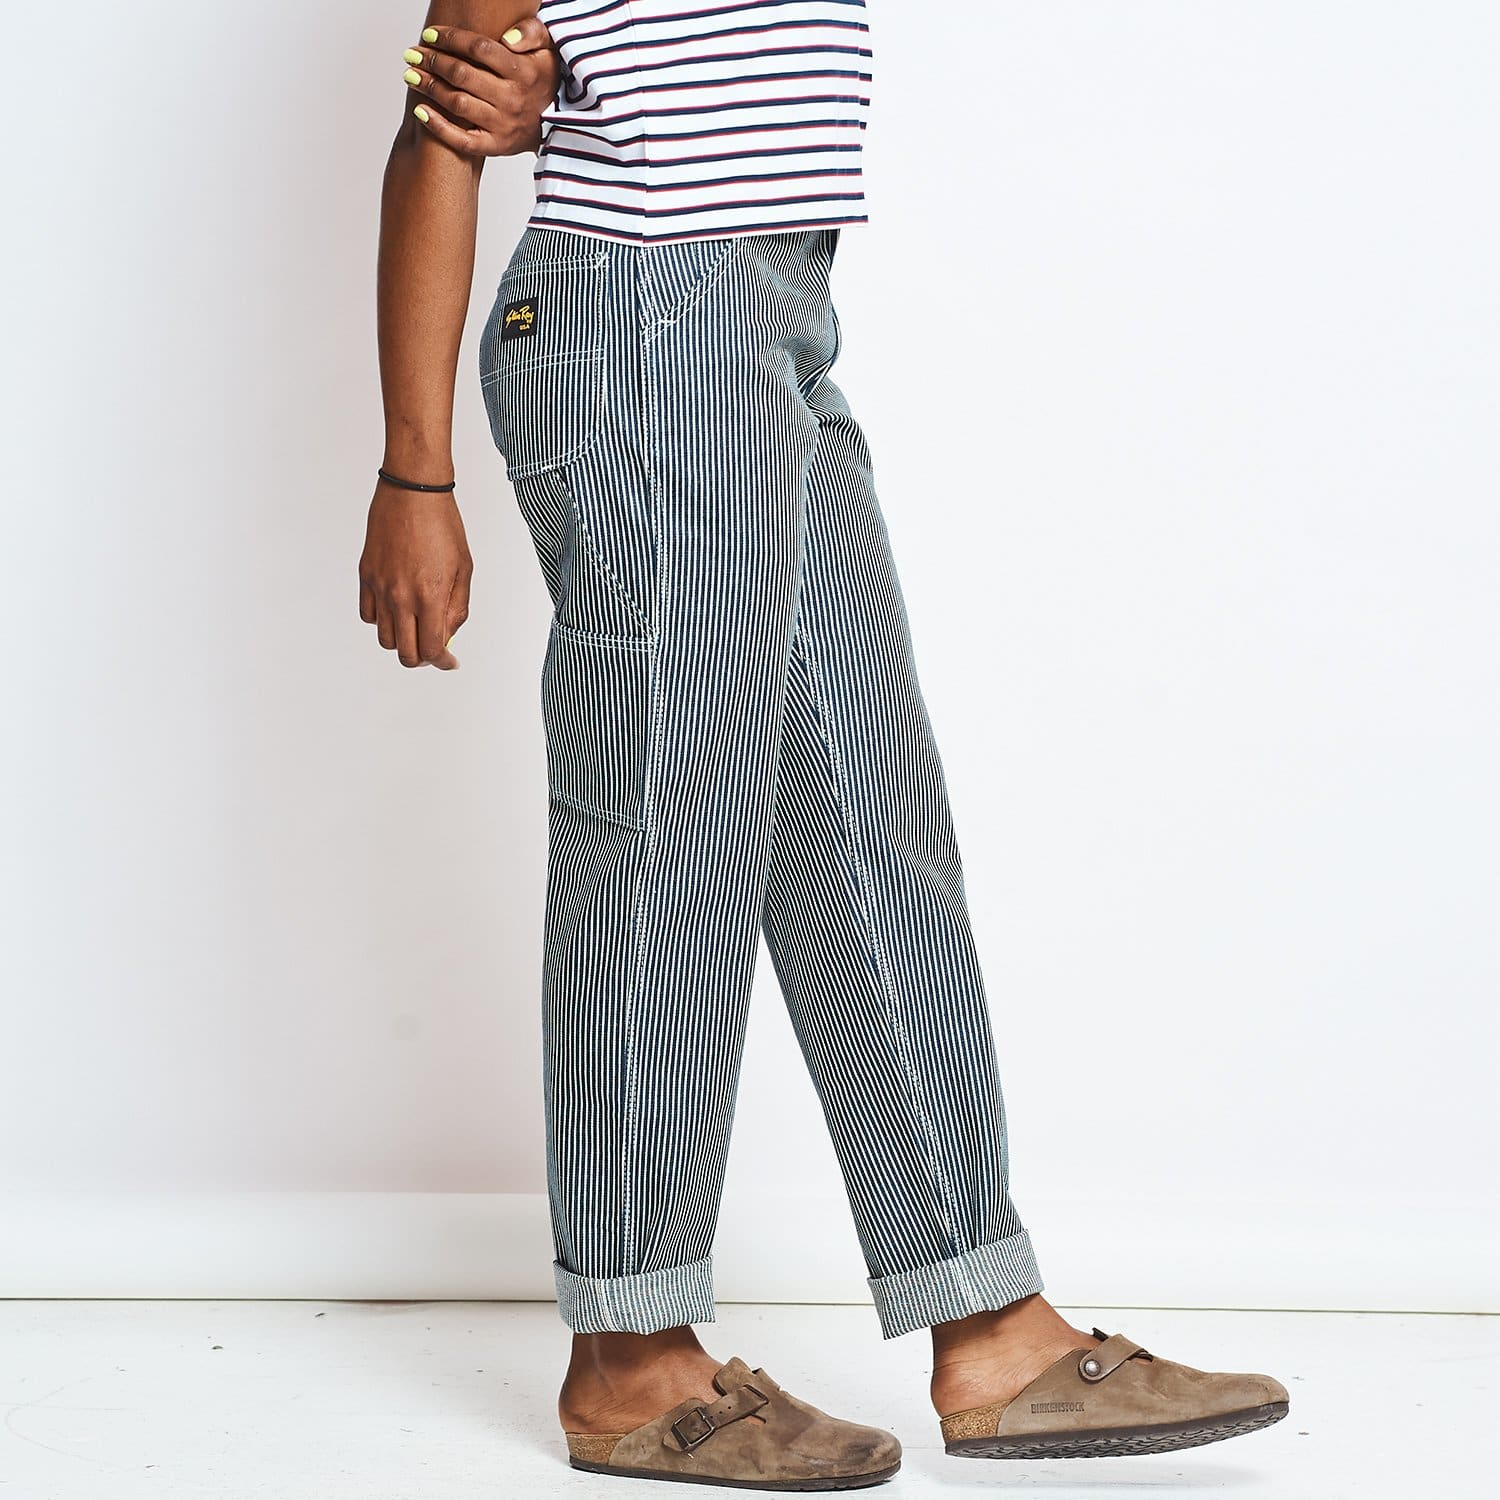 Stan Ray 80s Painters Pant - Hickory Stripe 80s, Baggy